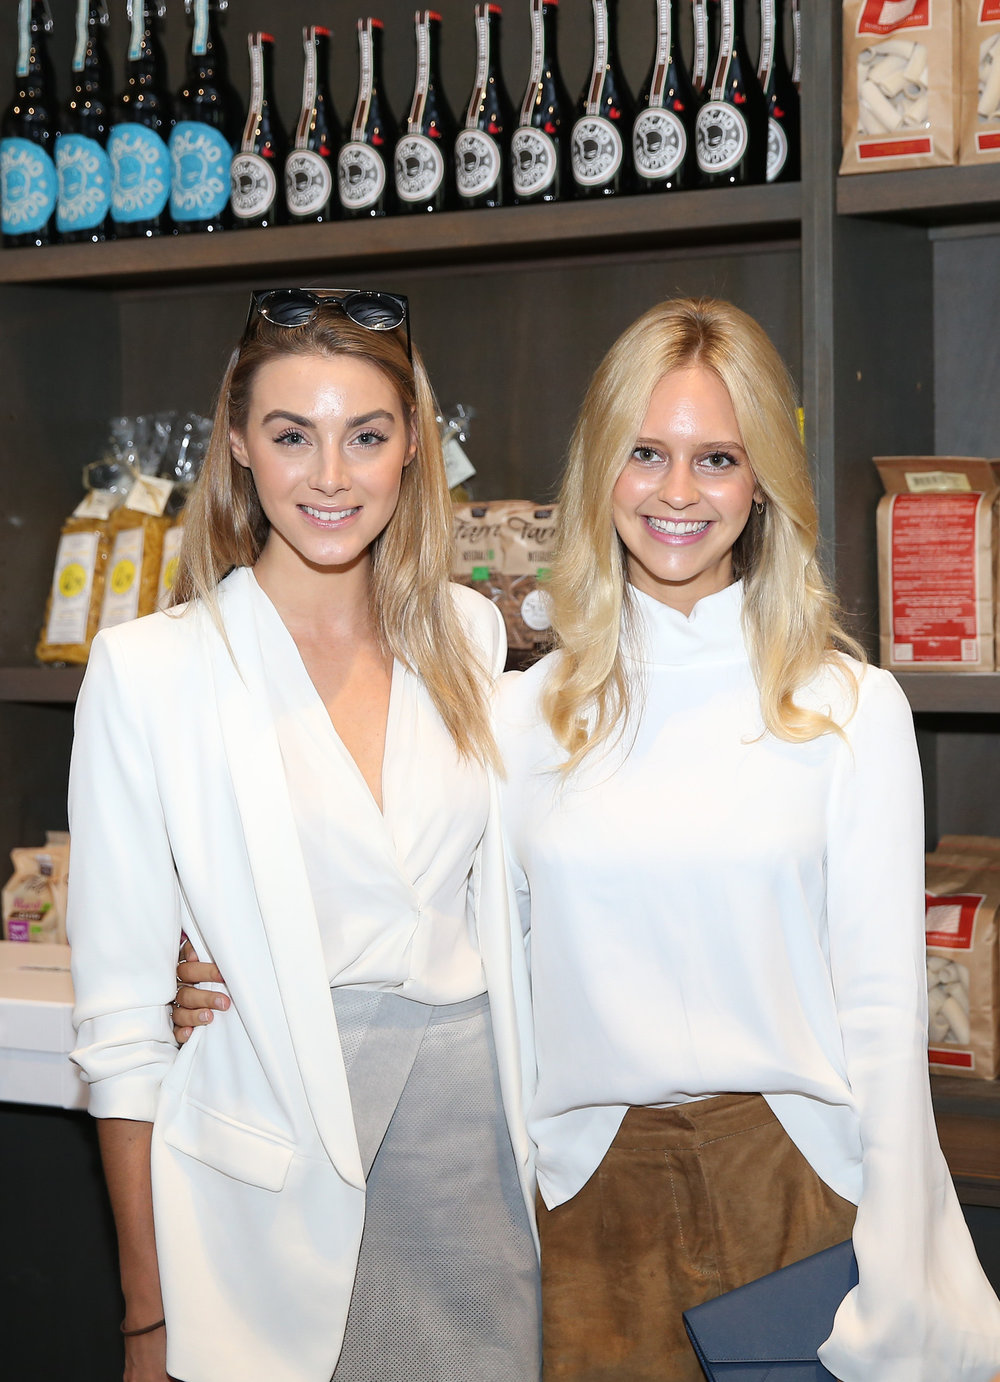 lavazza-vamff-blogger-brunch-brooke-meredith-saasha-burns.jpg